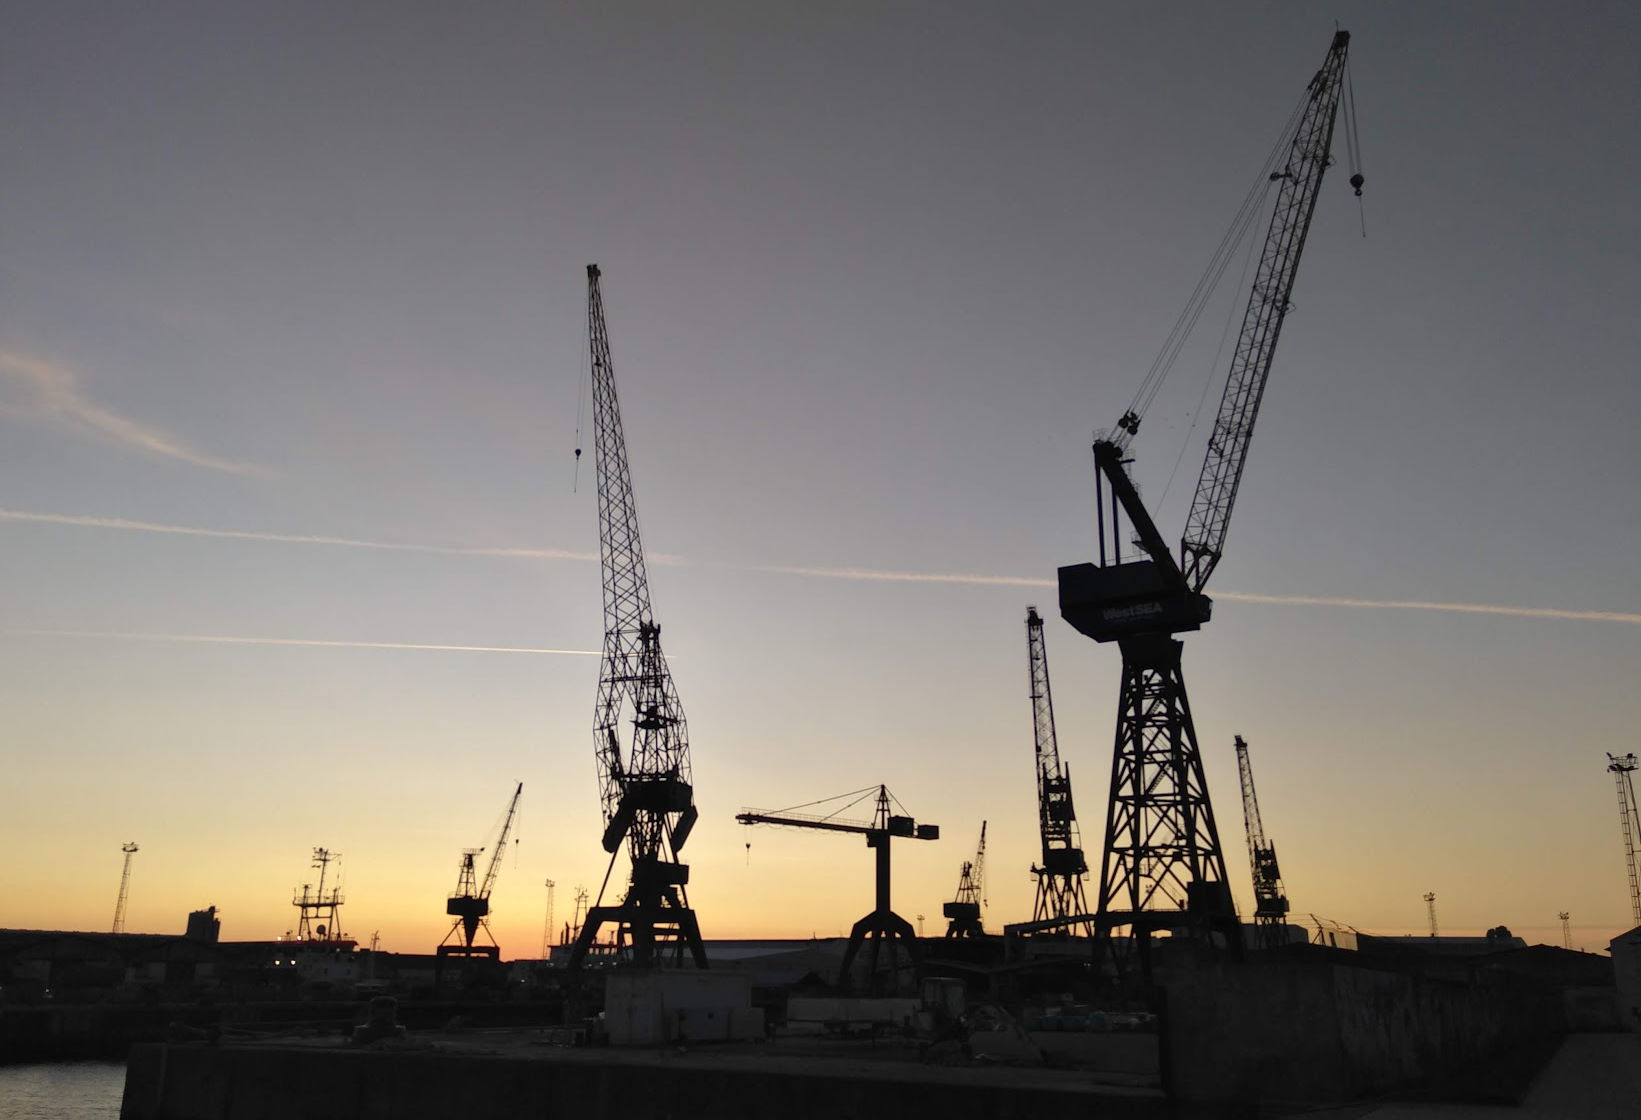 Some shore cranes used to represent our ocean freight online eLearning training